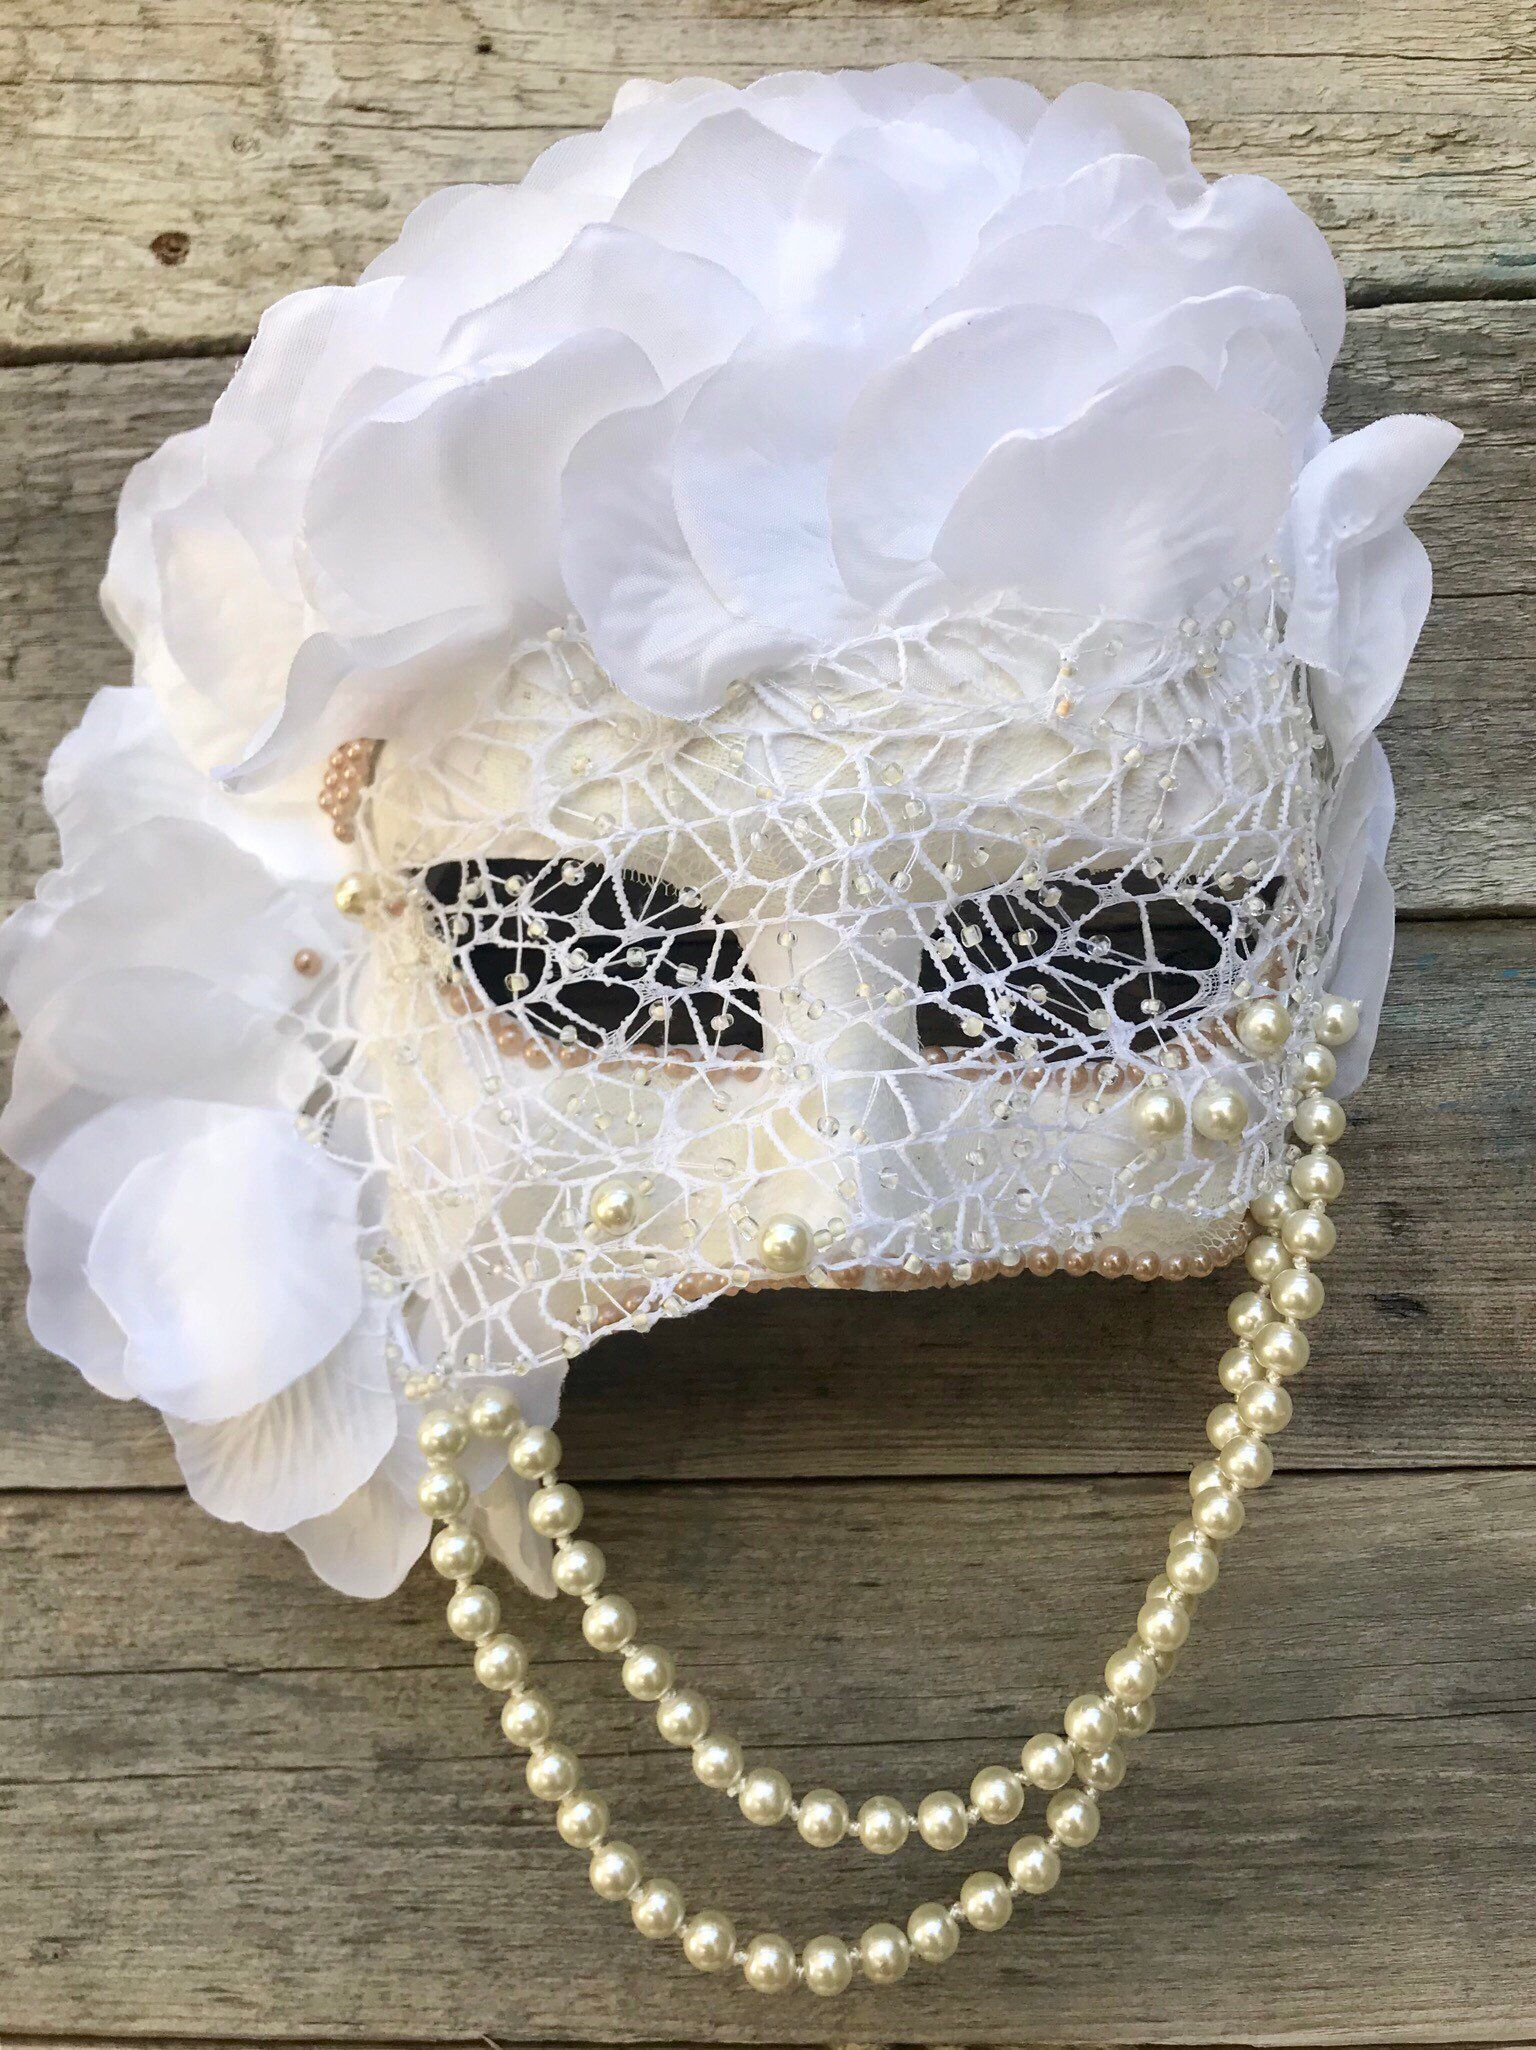 Your place to buy and sell all things handmade #masqueradeballgowns Excited to share this item from my #etsy shop: Masquerade mask, White mask, Masquerade ball mask.